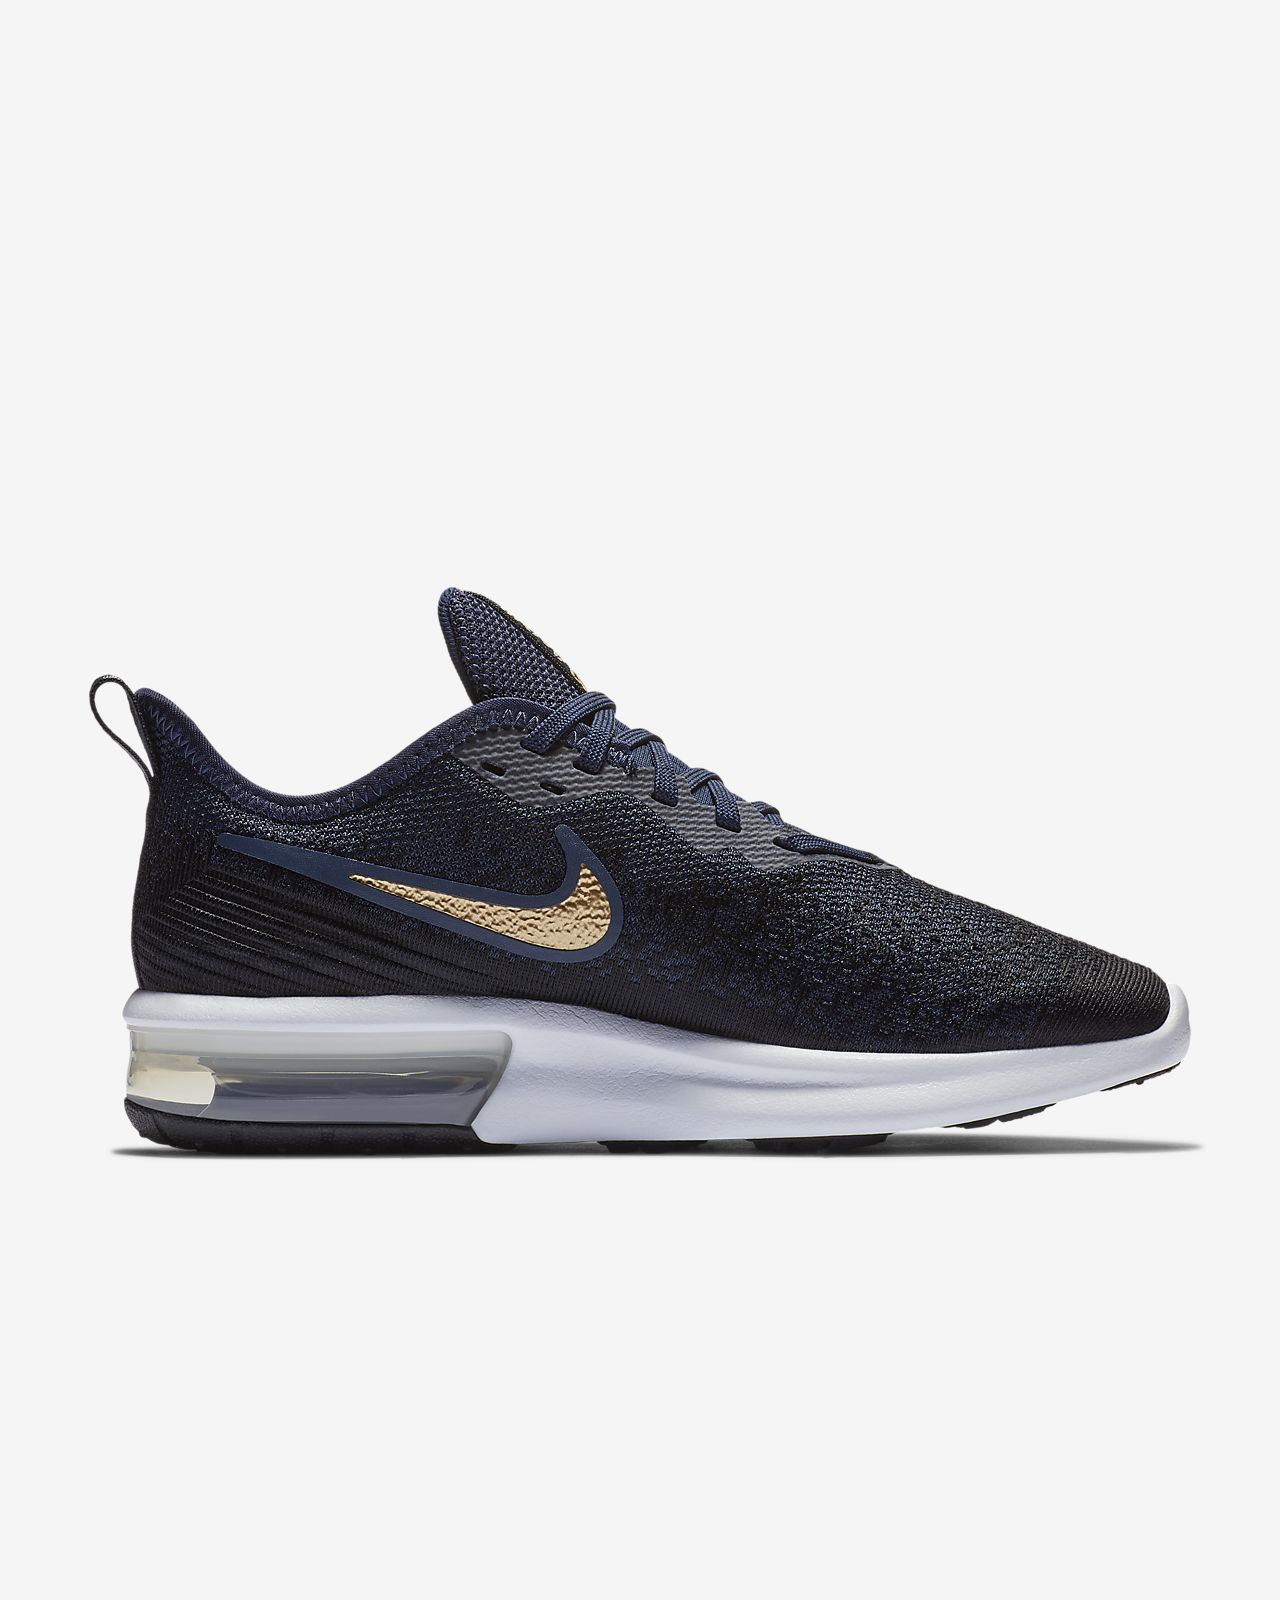 basquette nike air max fille